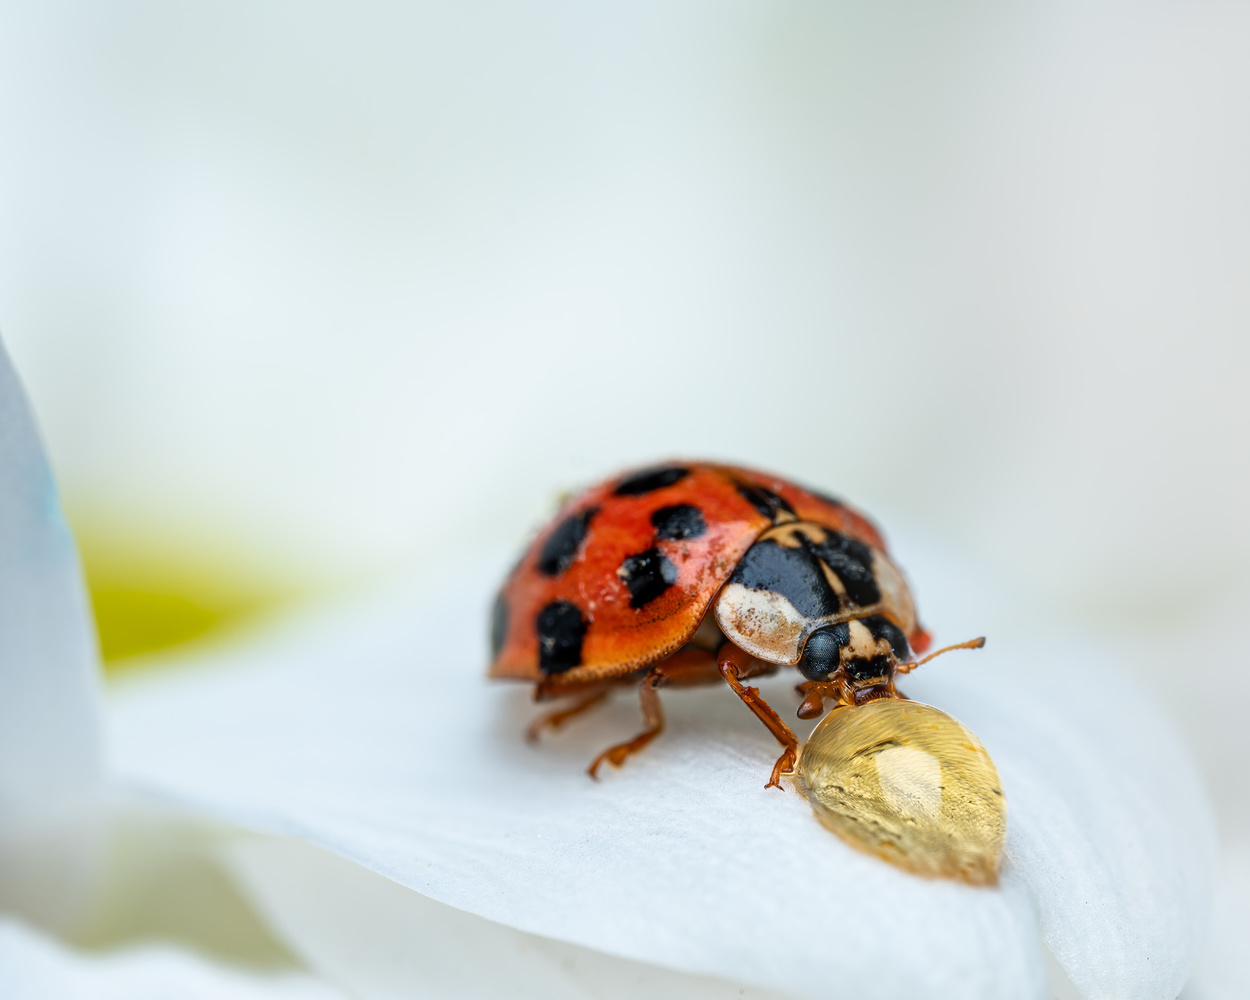 Ladybug feeding from a drop of honey by Skyler Ewing